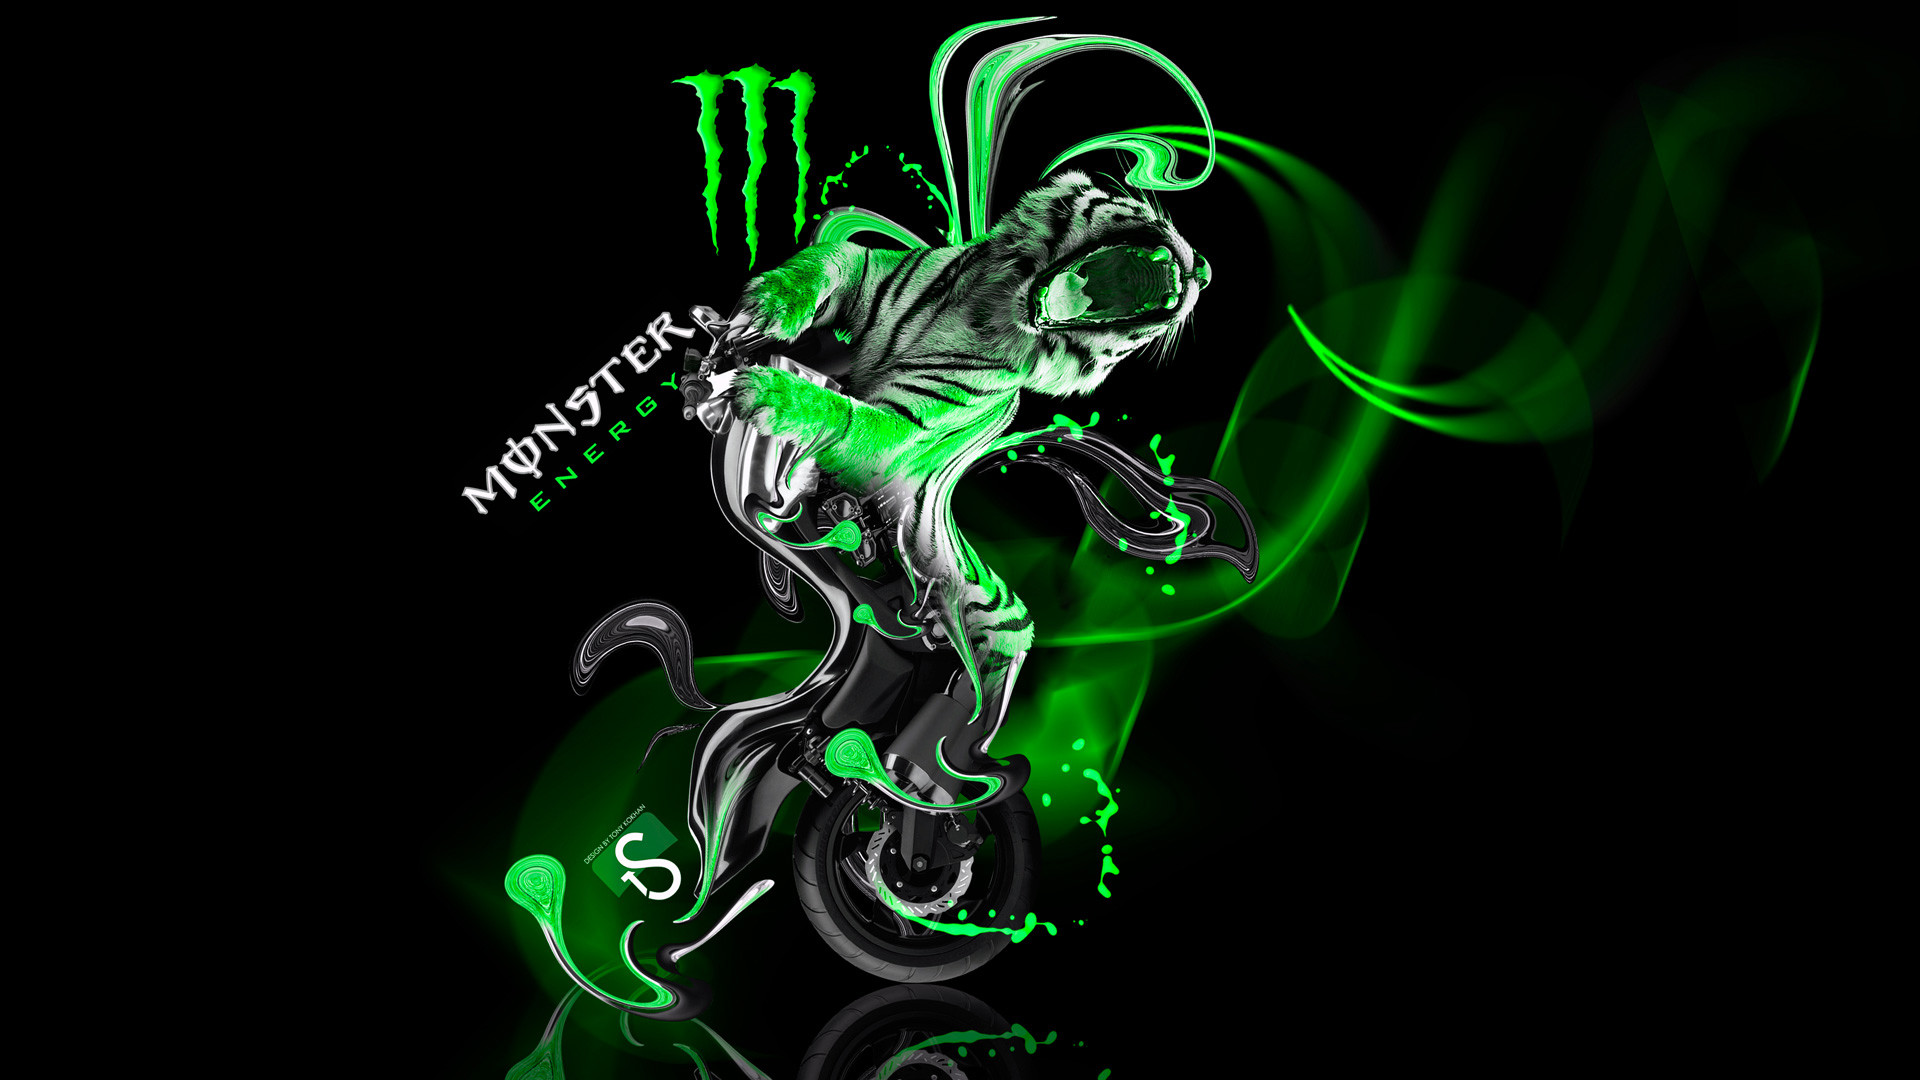 Cool Monster Backgrounds